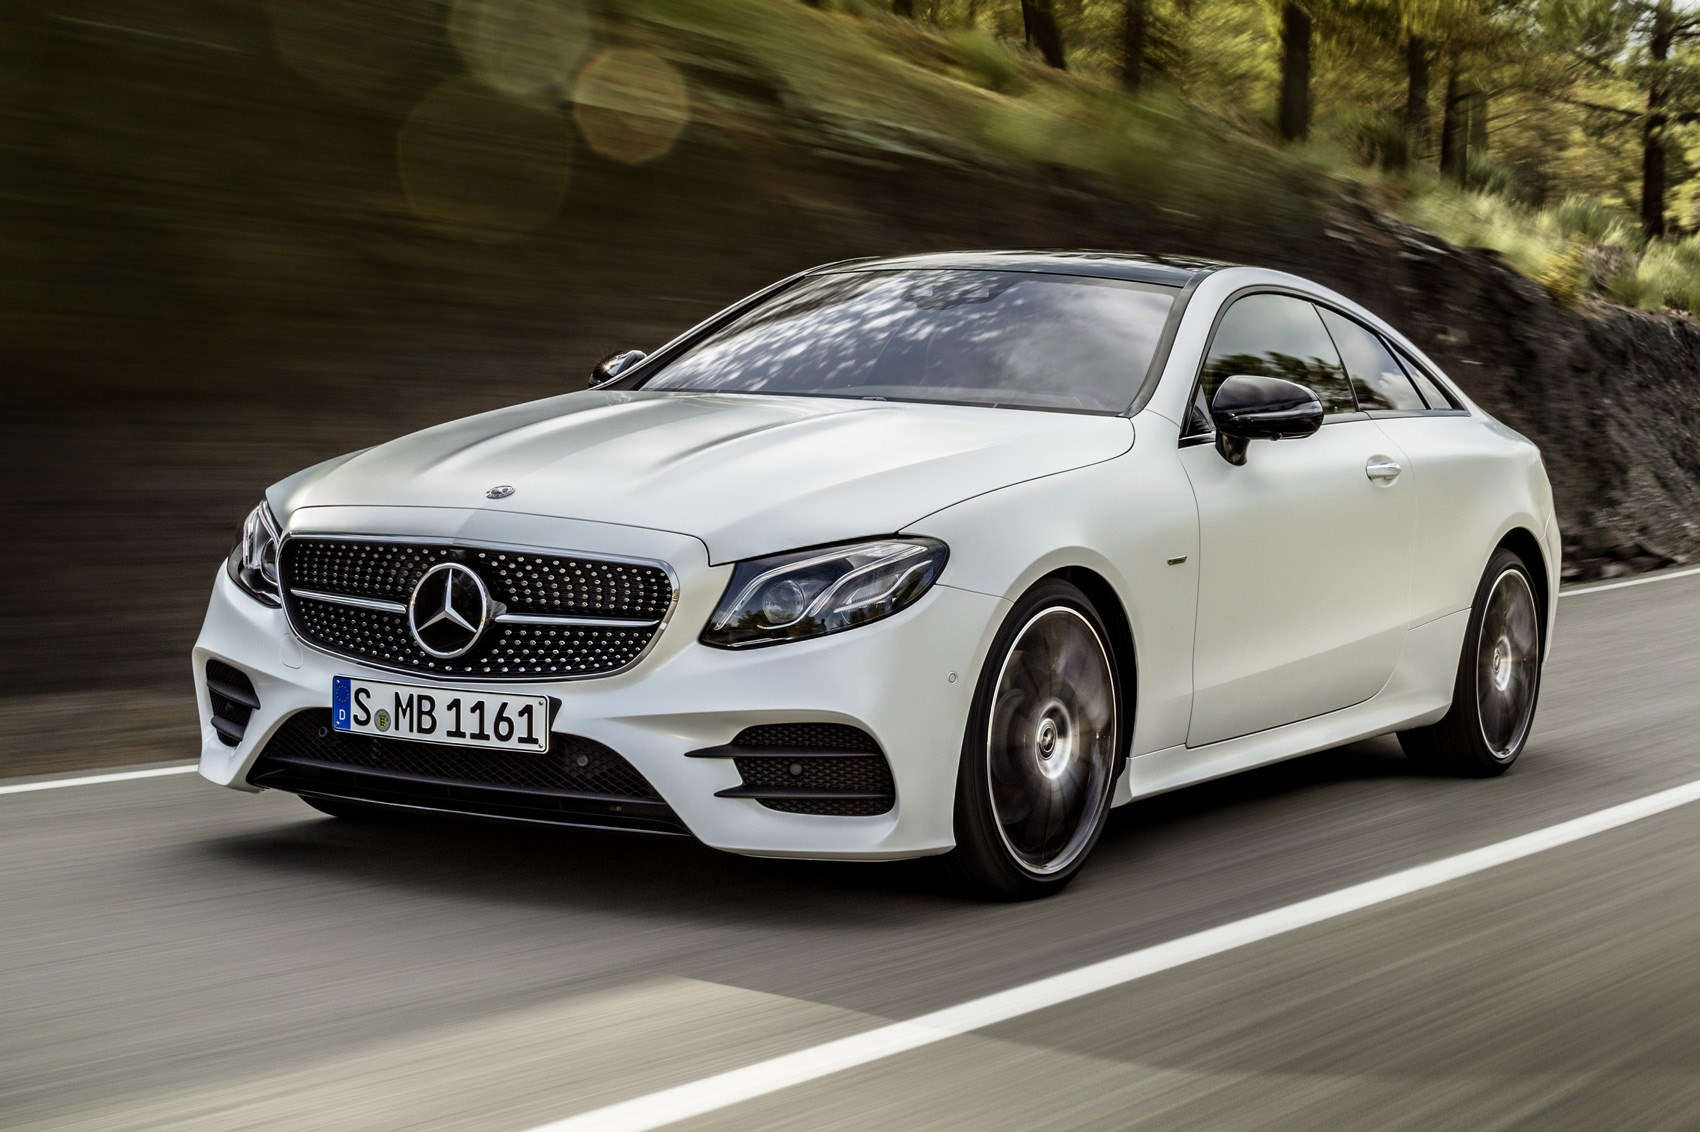 Reviews about Mercedes E Class as a reliable car